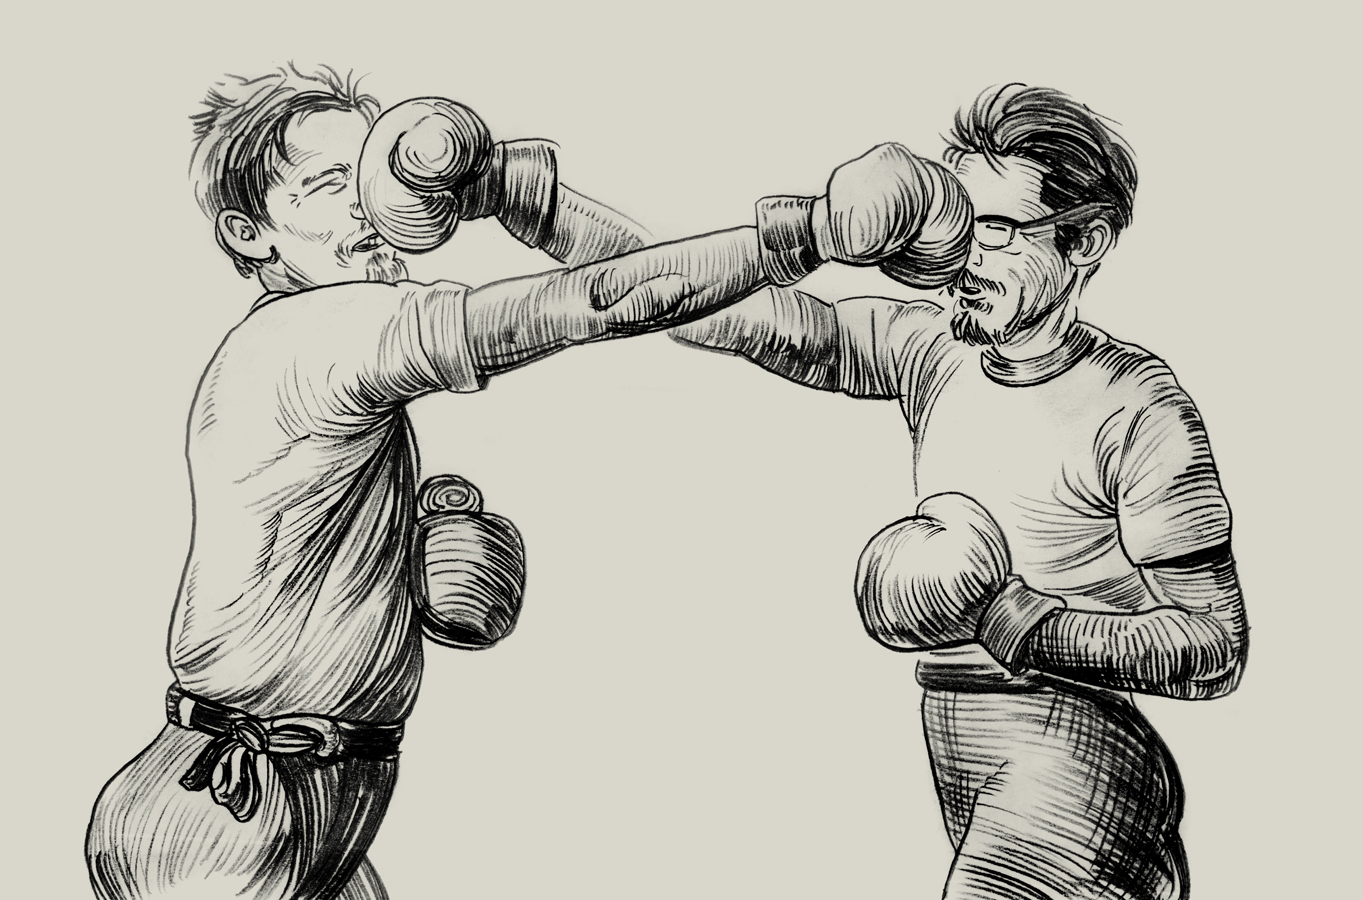 BATTLE HUGS: 7 Rules for Working with Art Directors & Editors